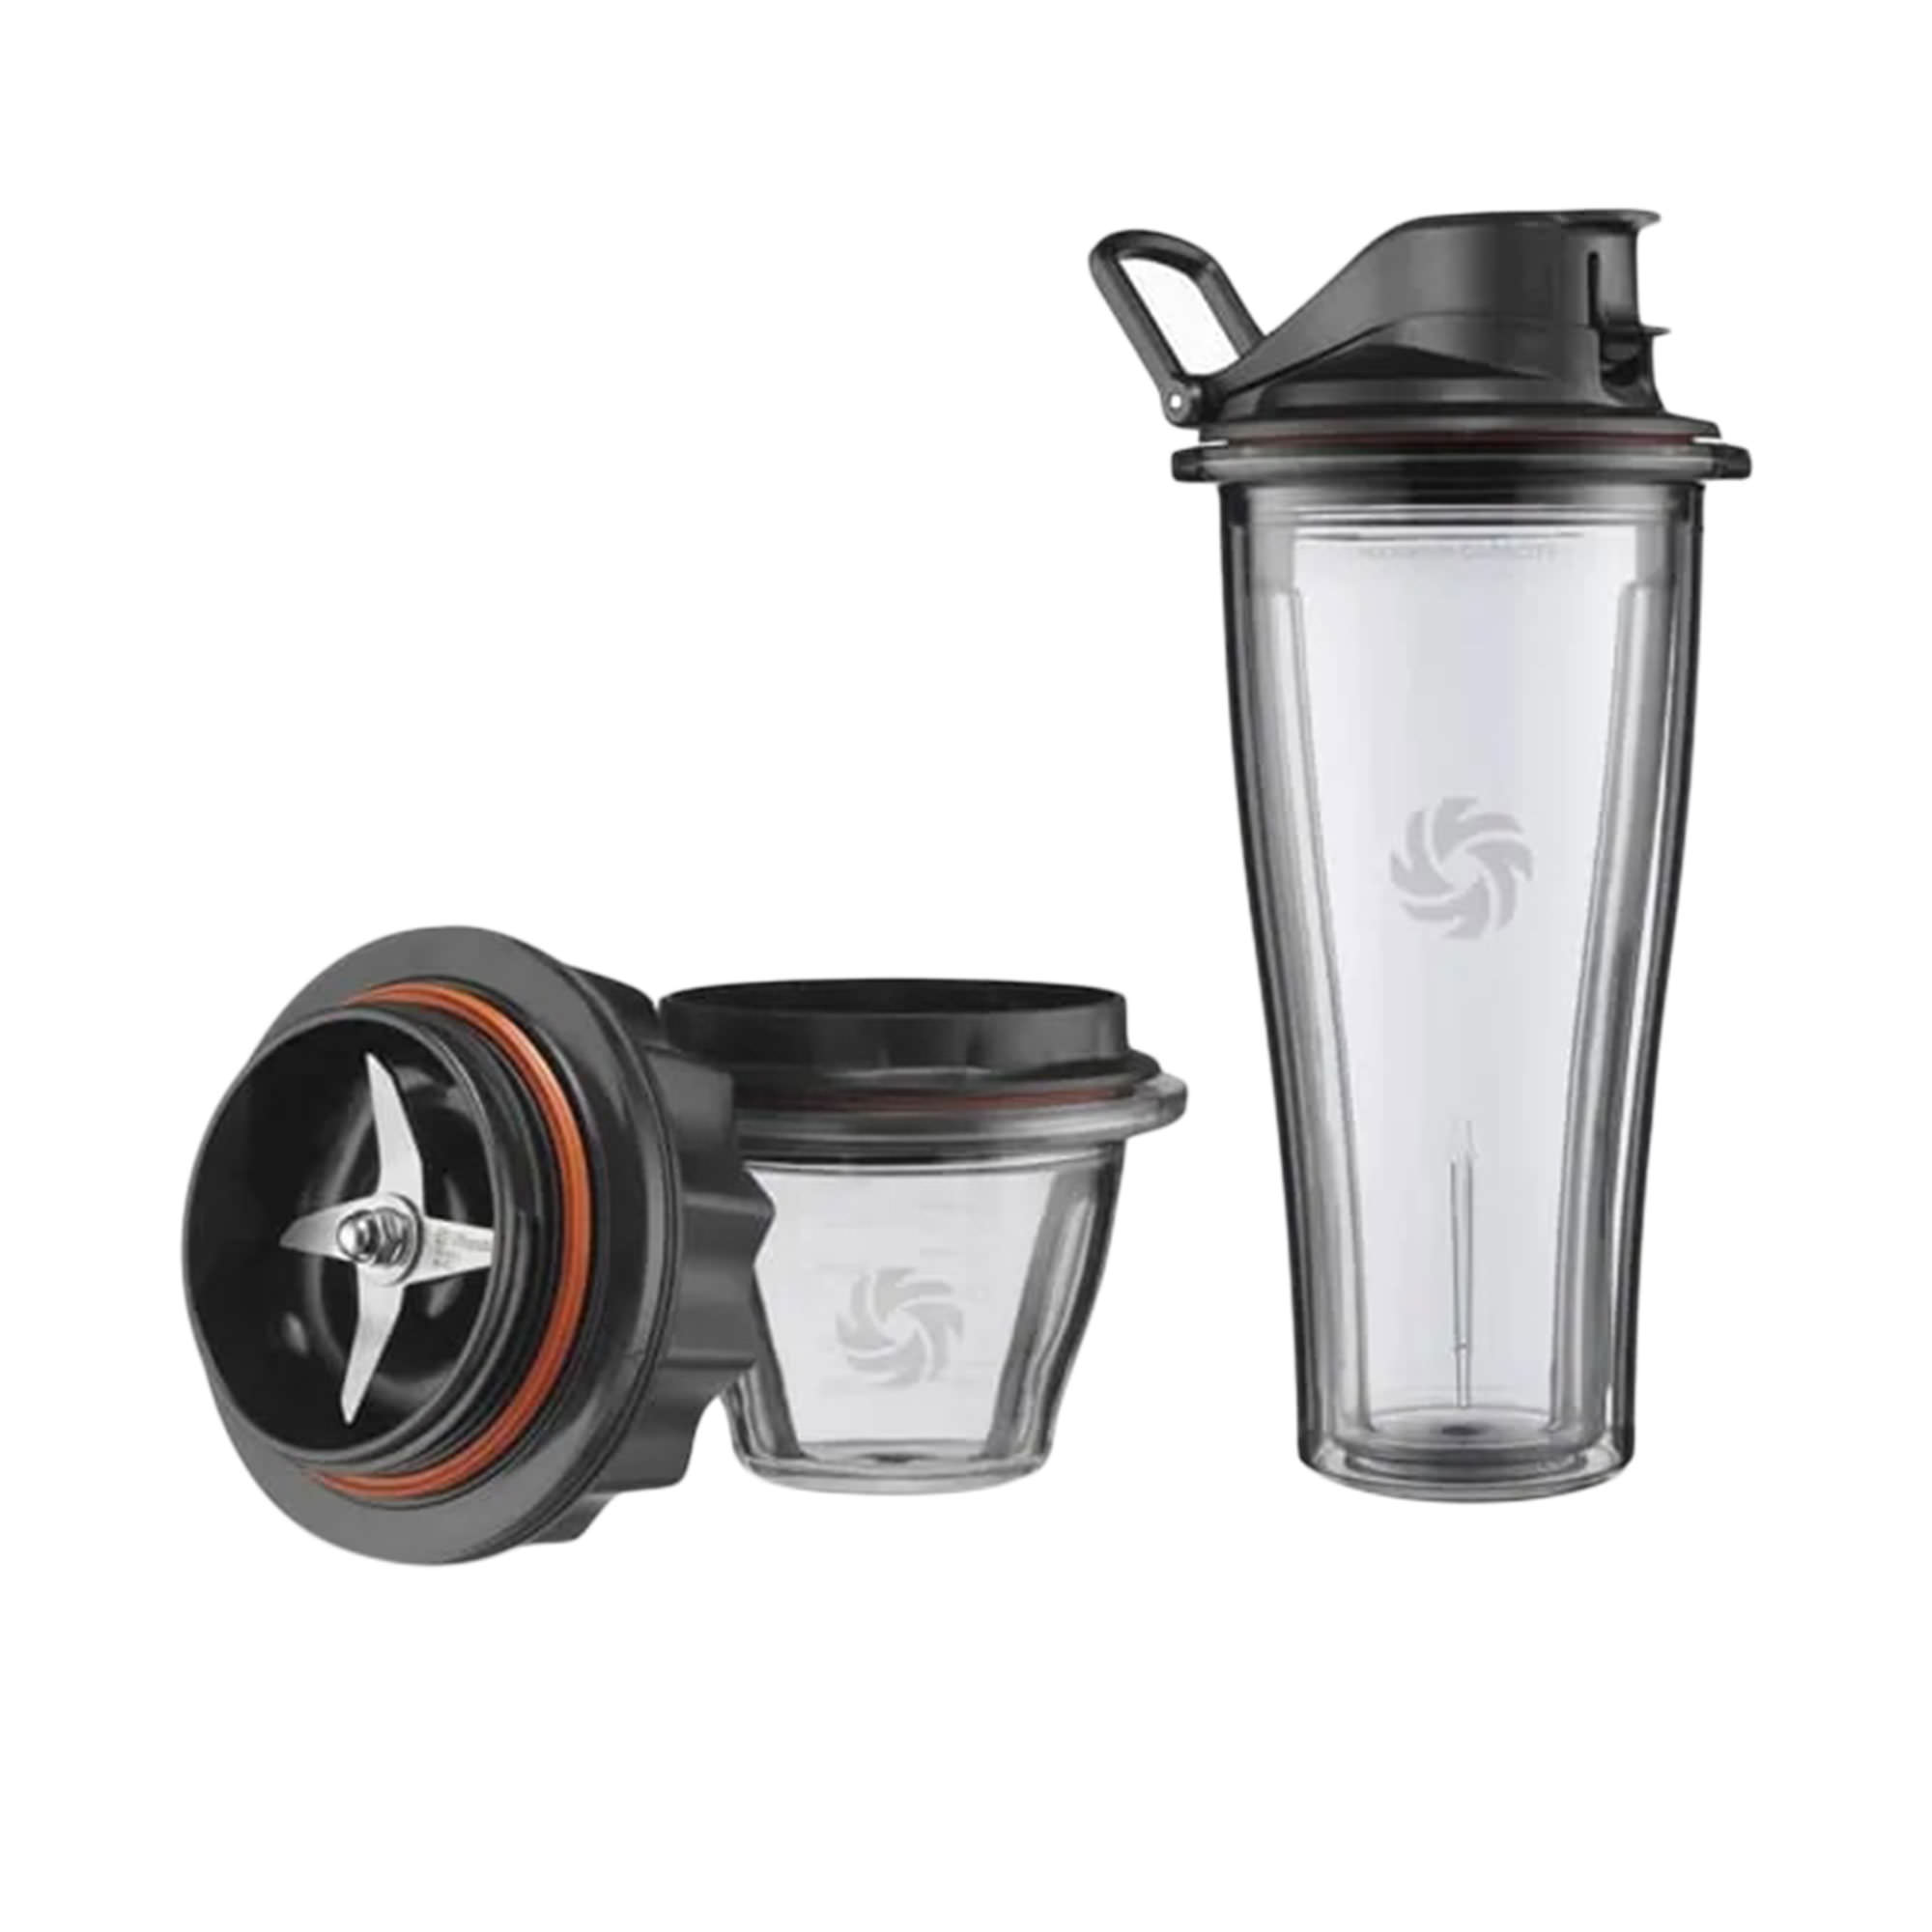 Vitamix Ascent Series Cup and Bowl Starter Kit